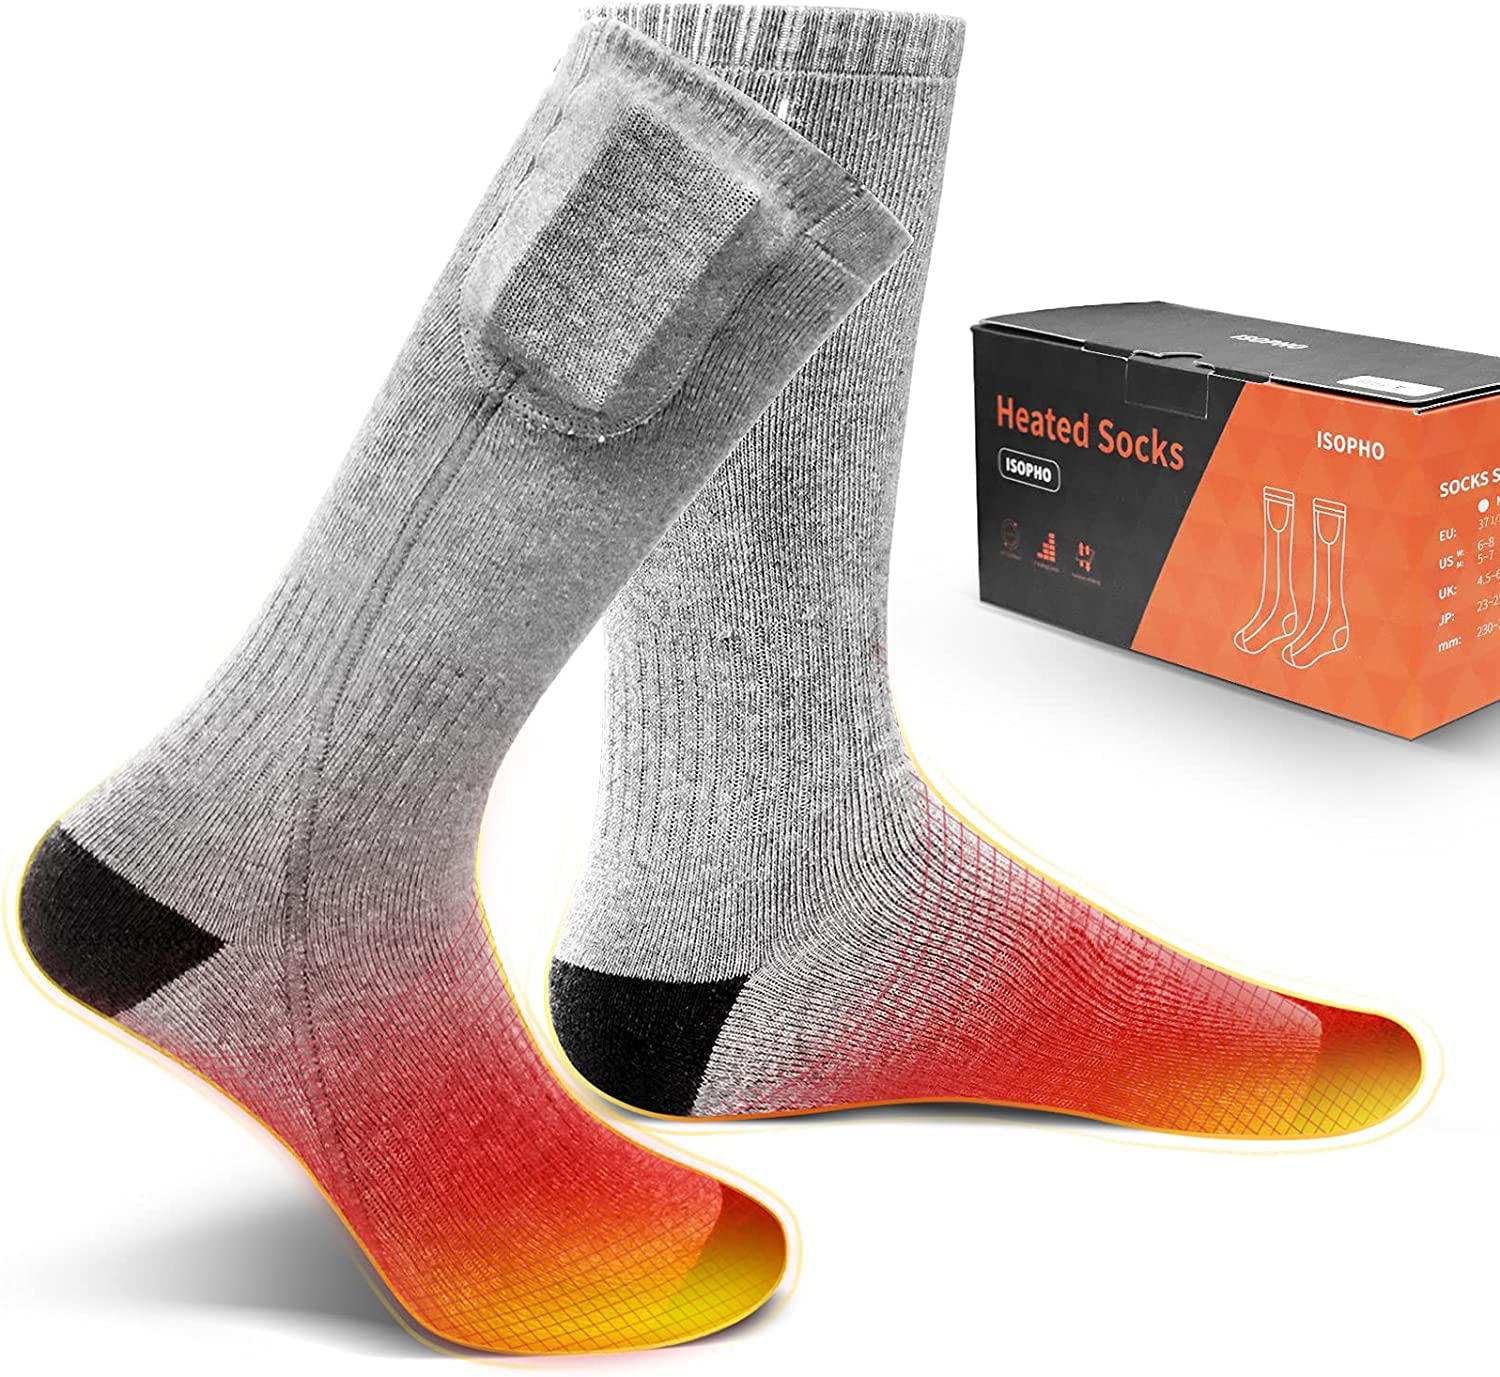 ISOPHO Rechargeable Japan's largest assortment Battery Heated Socks for Men 5 ☆ very popular Washable Women